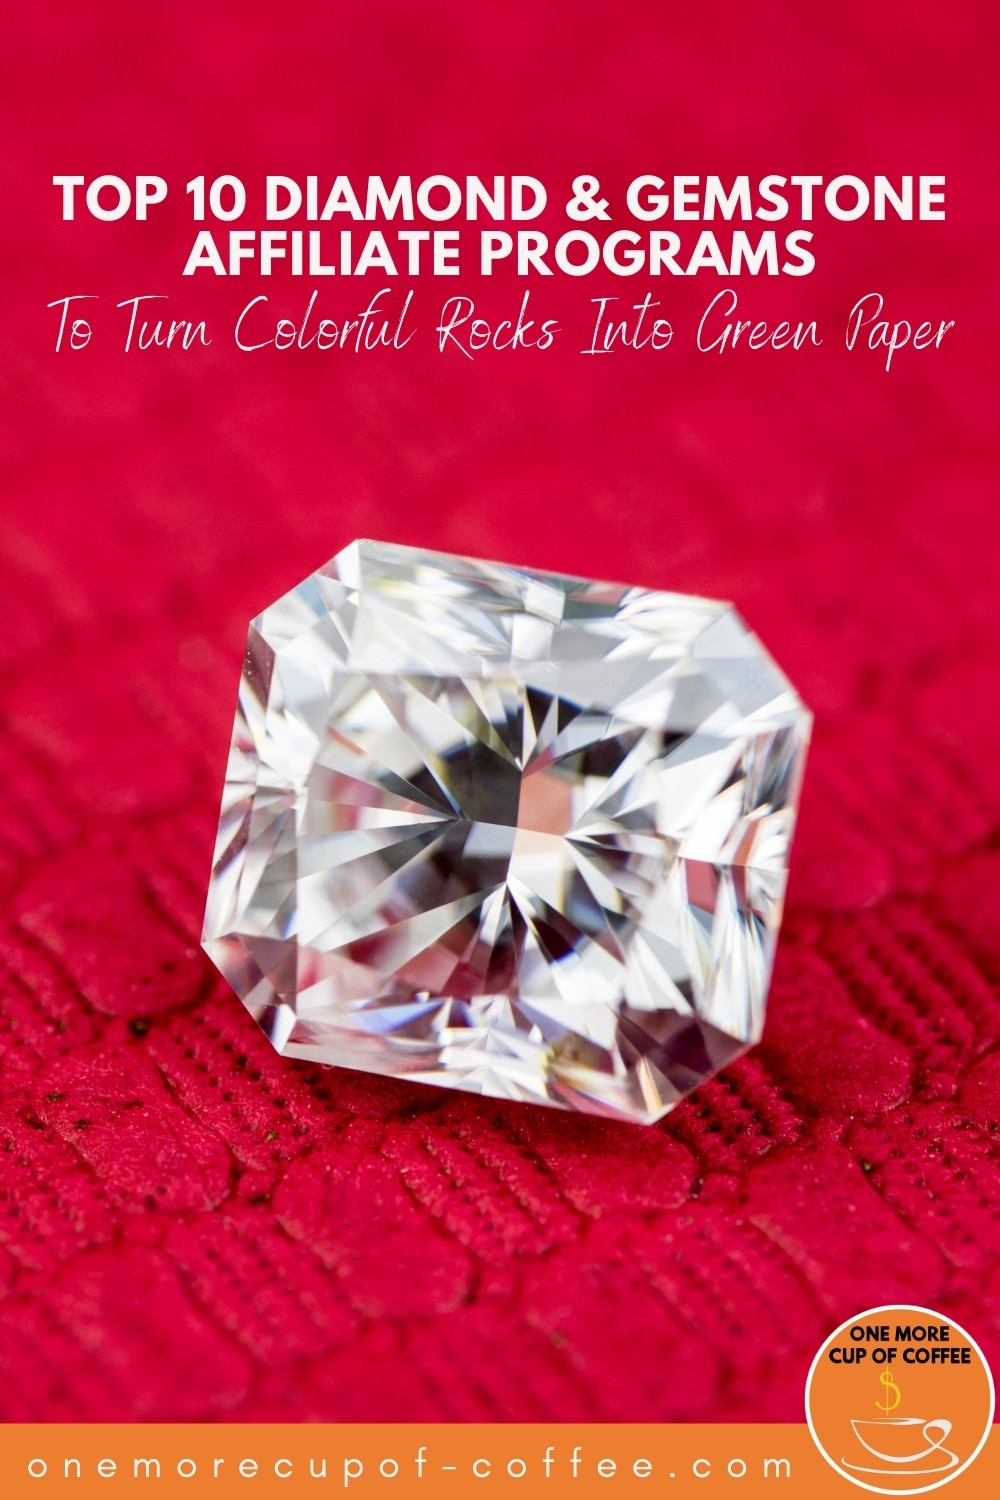 """closeup image of a diamond against a red cushion; with text overlay """"Top 10 Diamond & Gemstone Affiliate Programs To Turn Colorful Rocks Into Green Paper"""""""